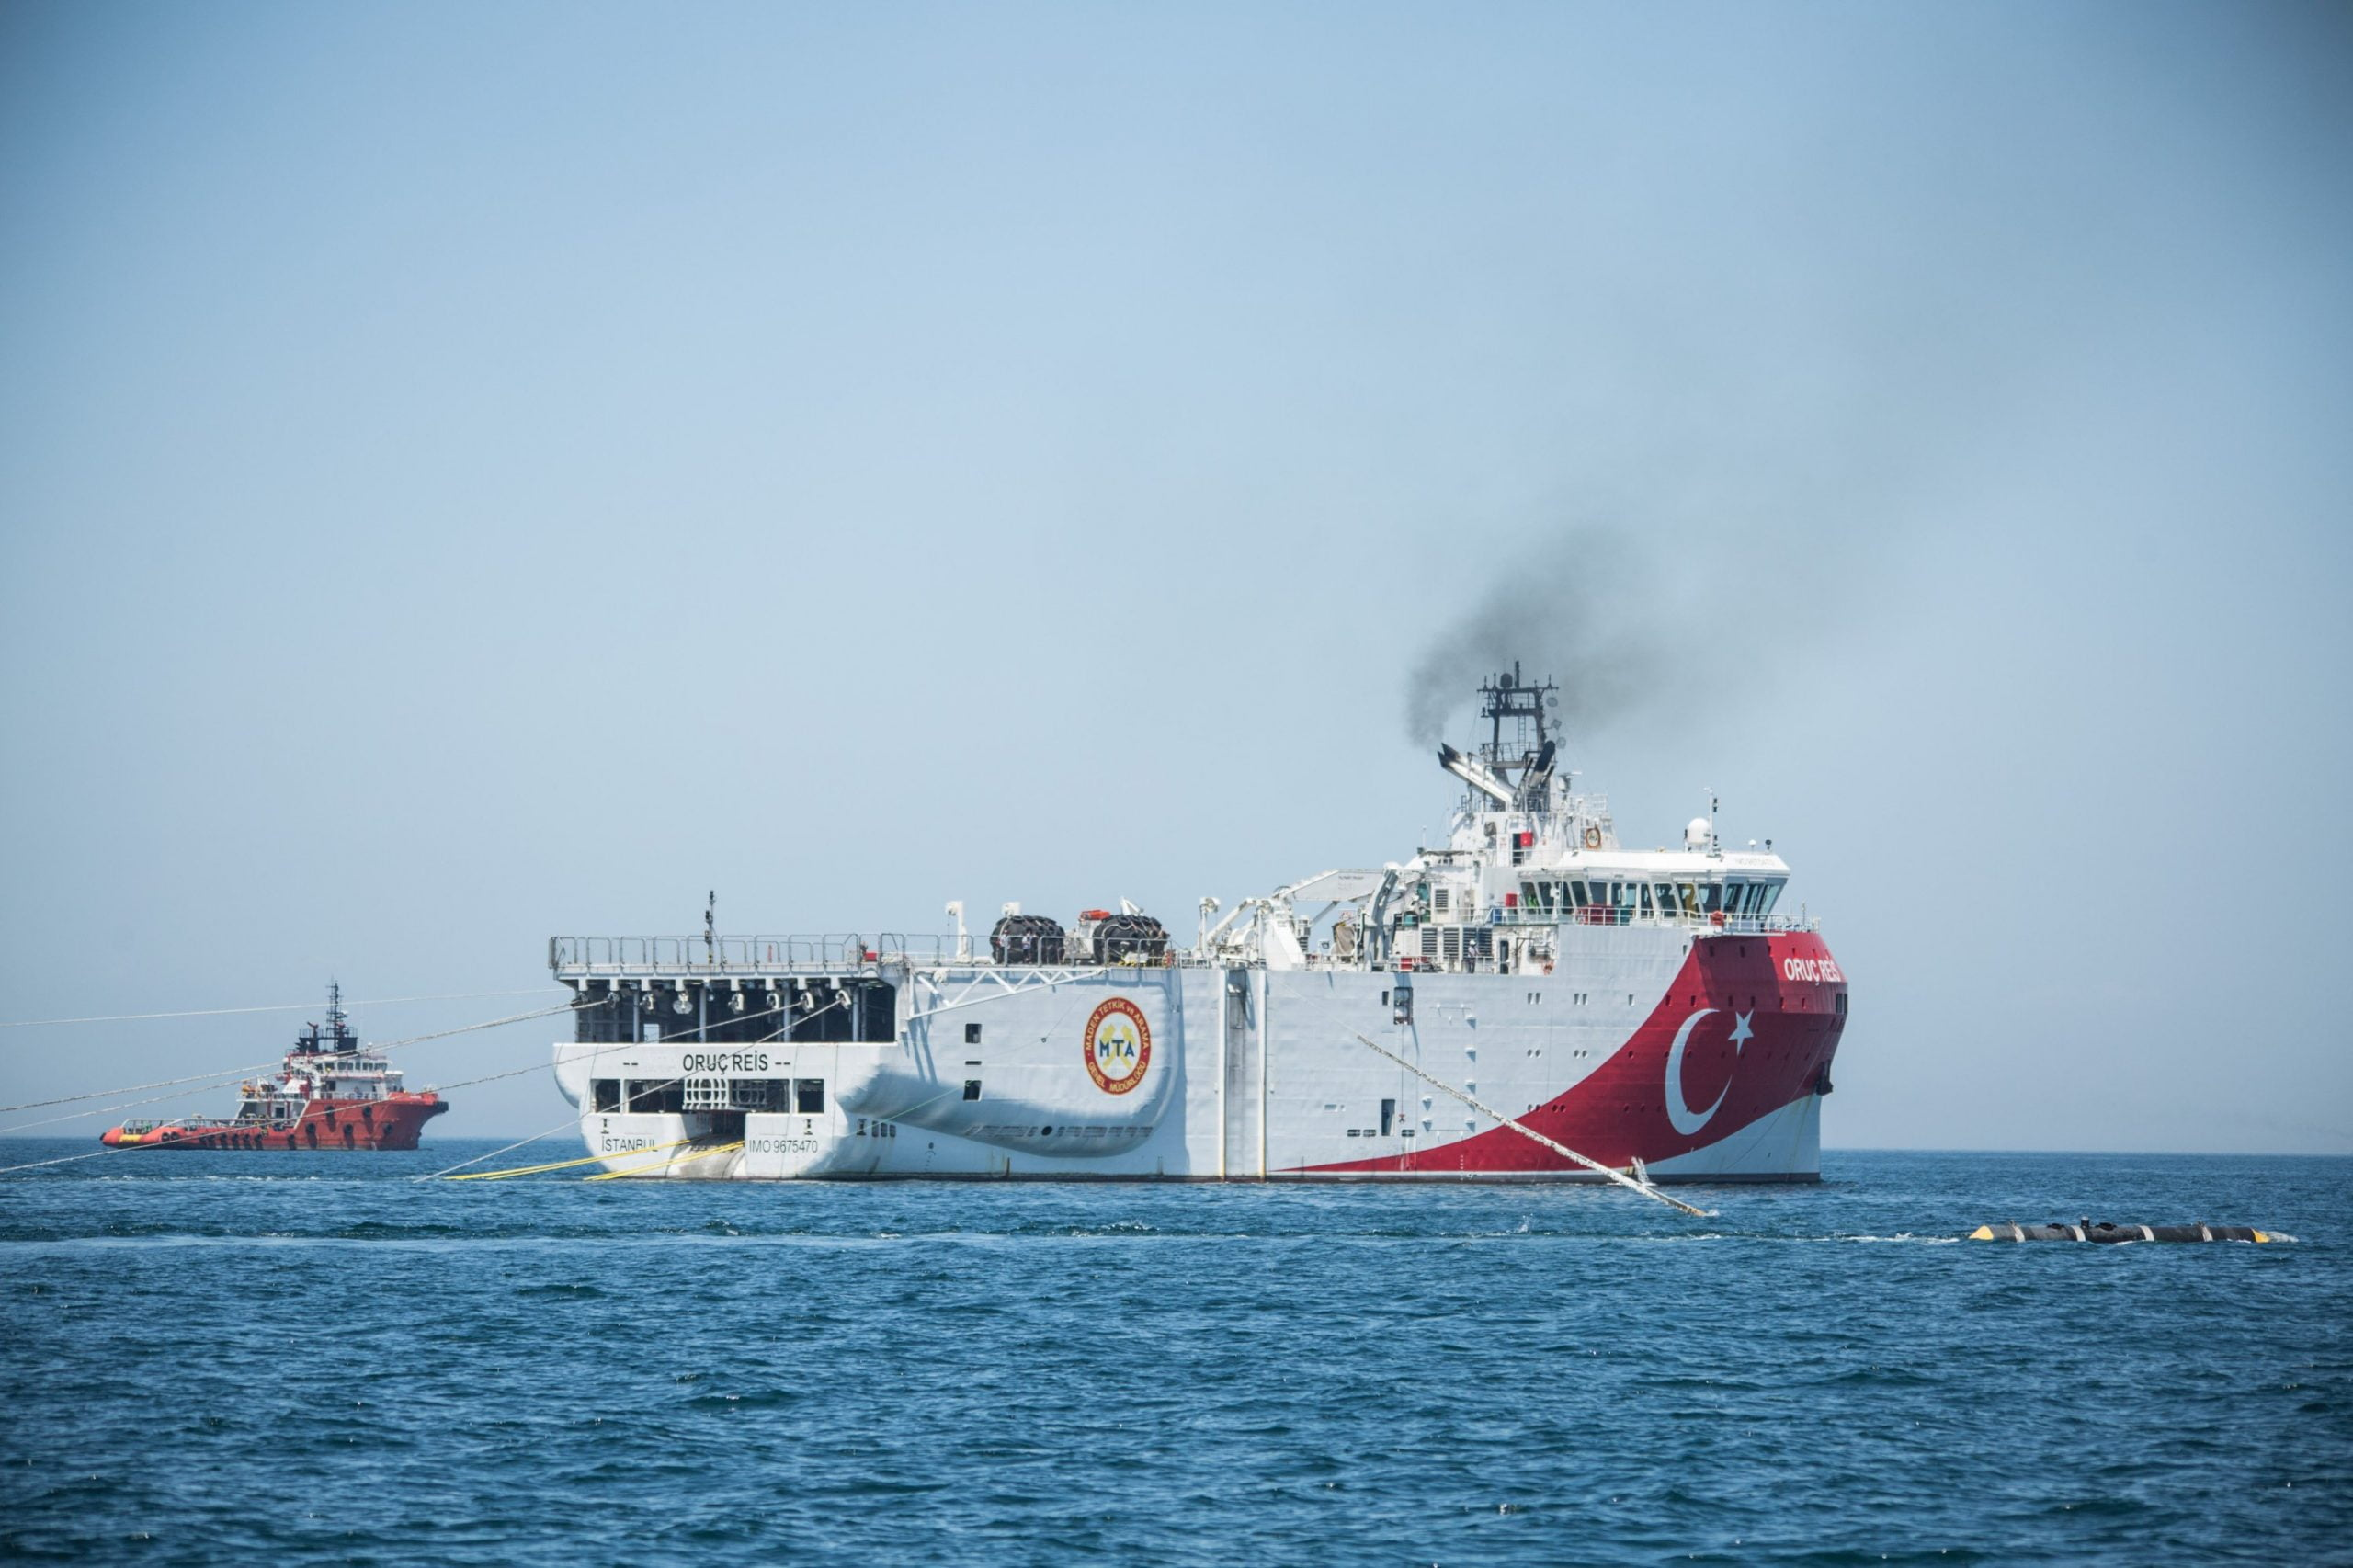 Turkey claims to be open to dialogue on disputes in the Eastern Mediterranean